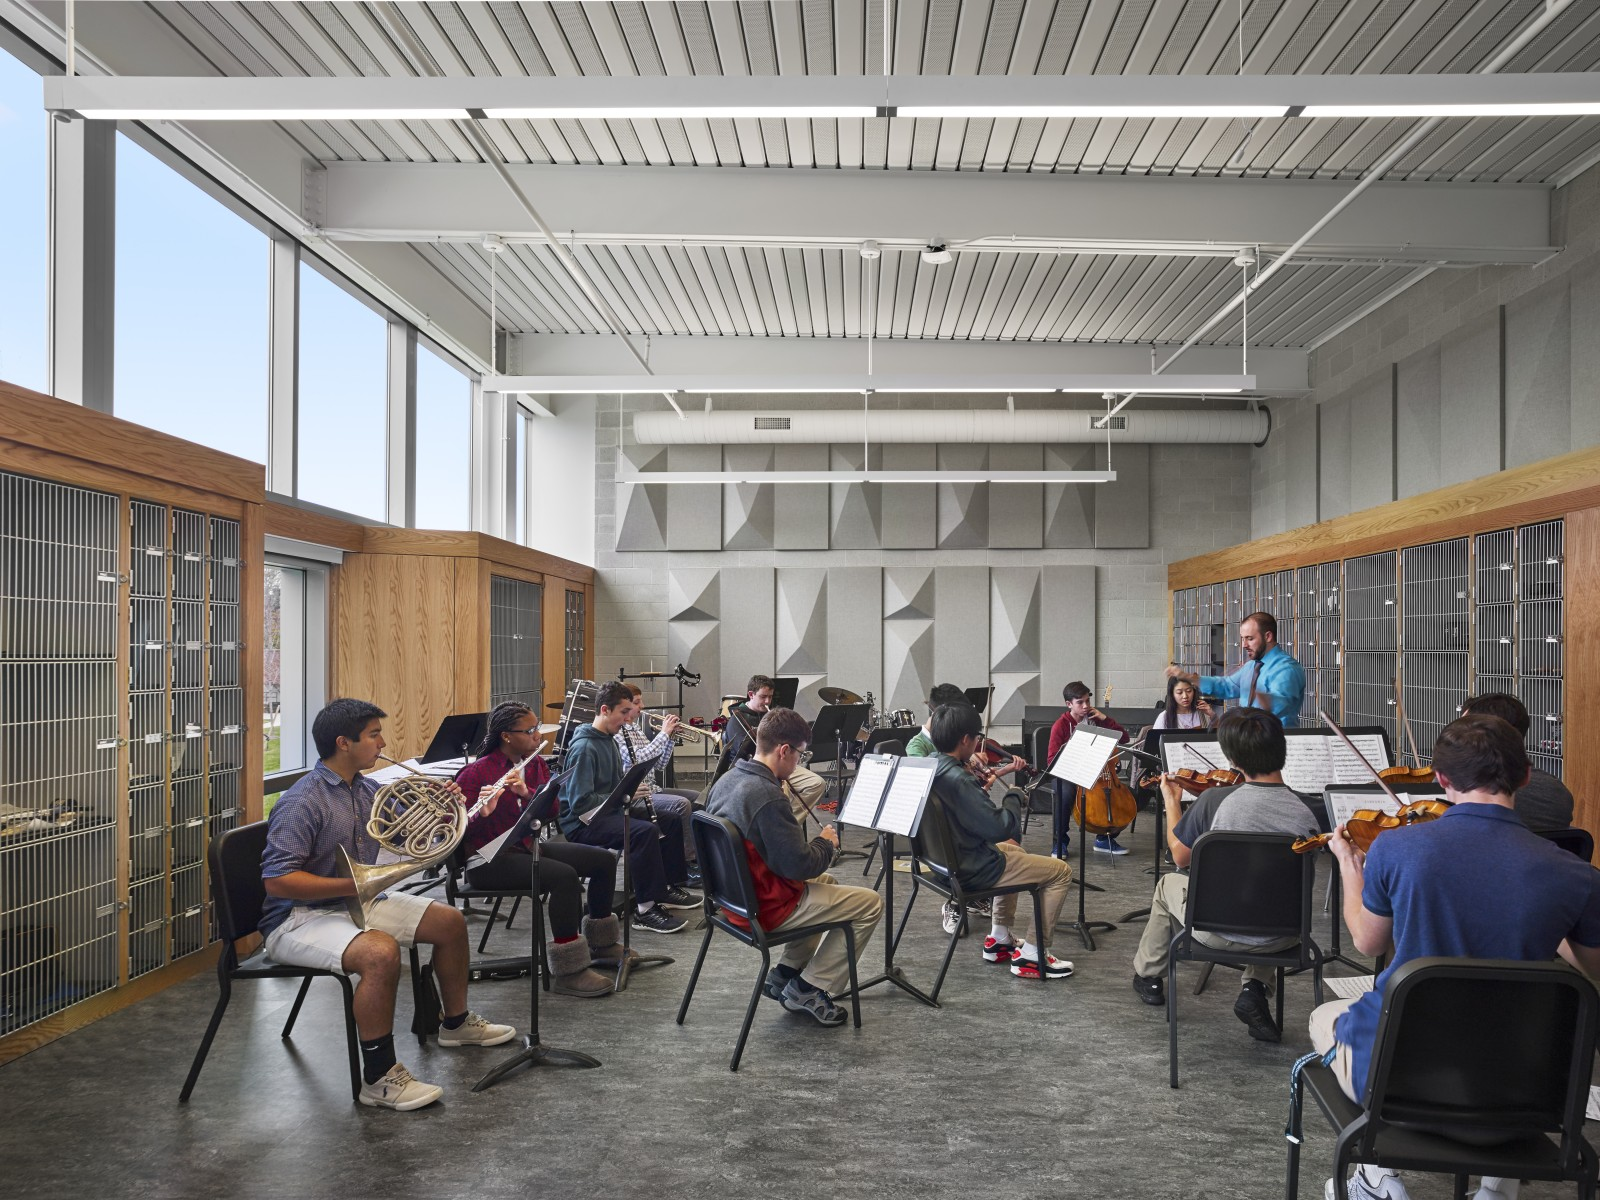 Students playing instruments in new Ensemble Room in newly constructed Shipley Commons